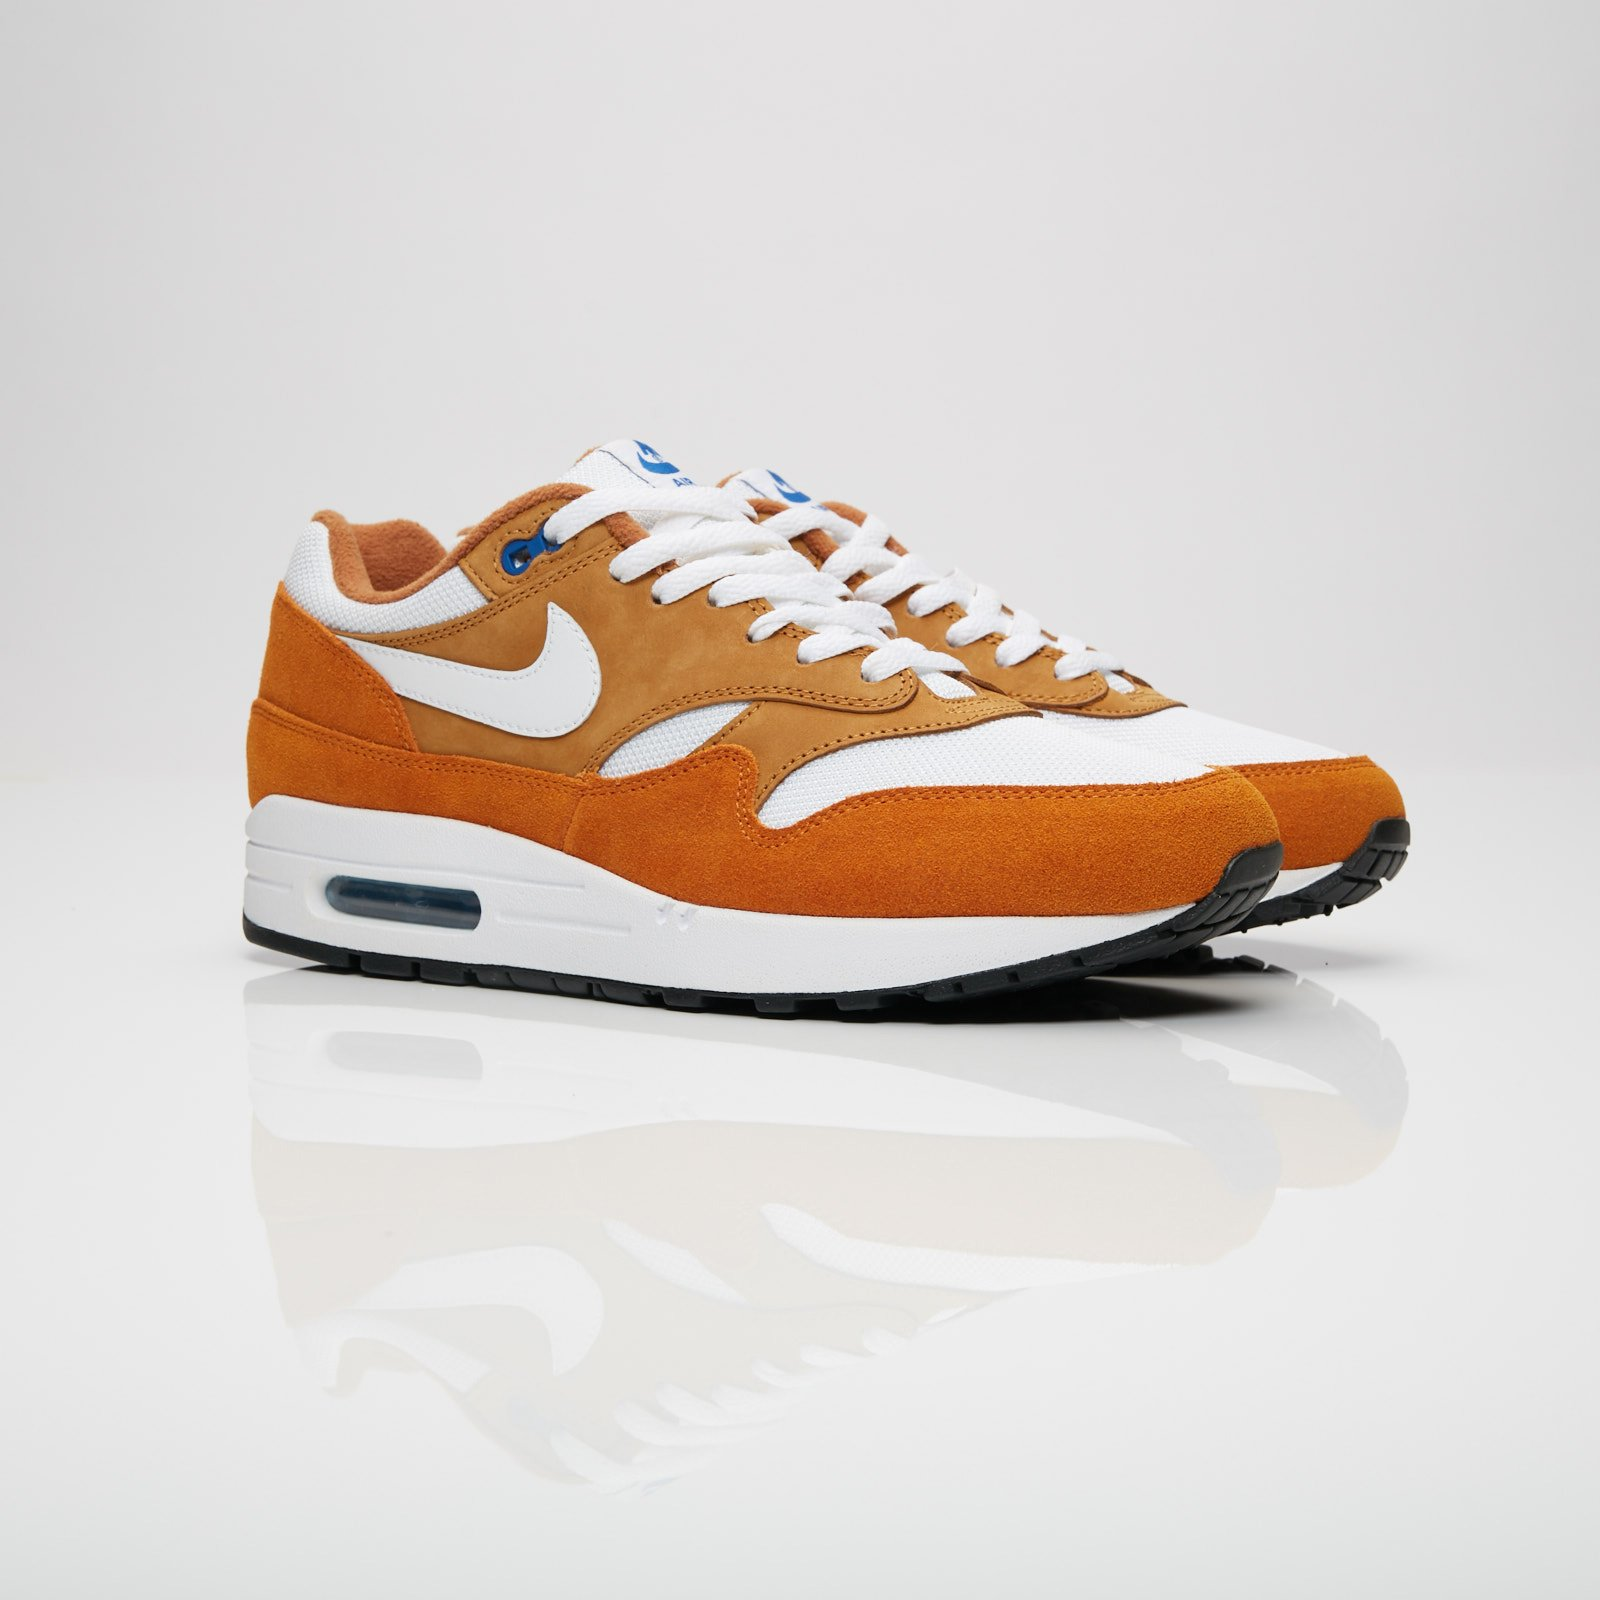 best website 4f55e ccc22 Nike Sportswear Air Max 1 Premium Retro